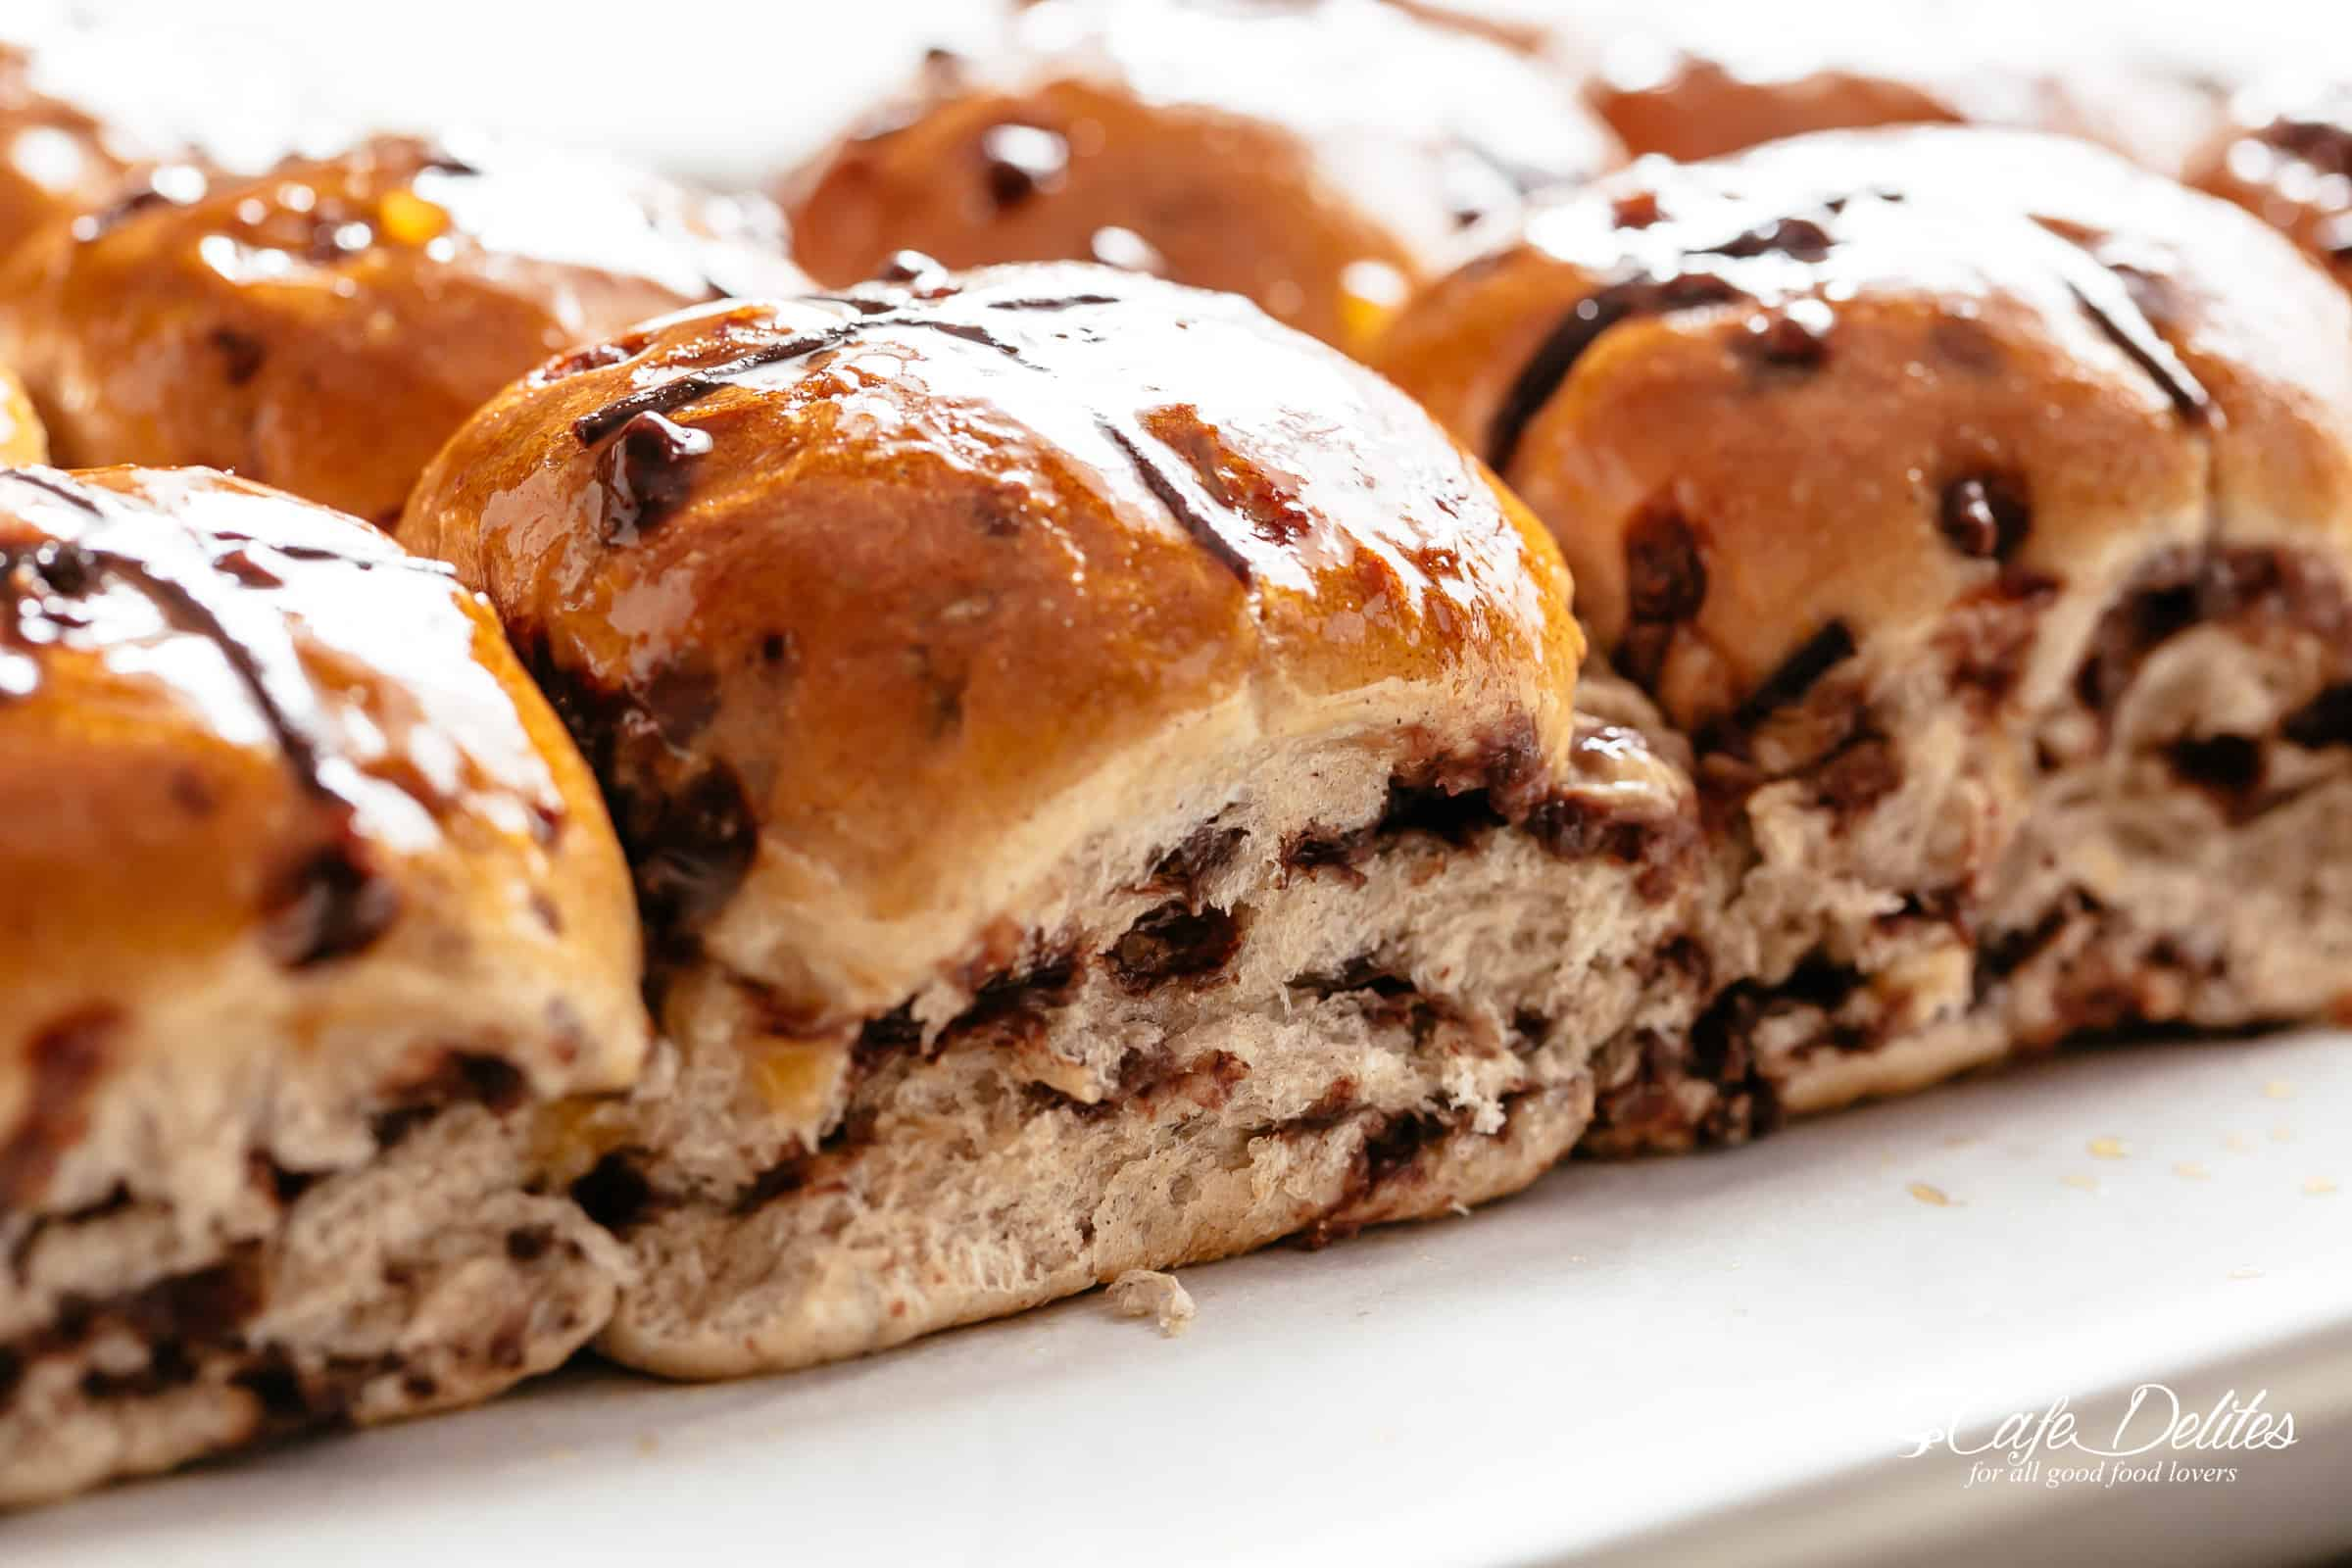 Homemade hot cross buns | cafedelites.com